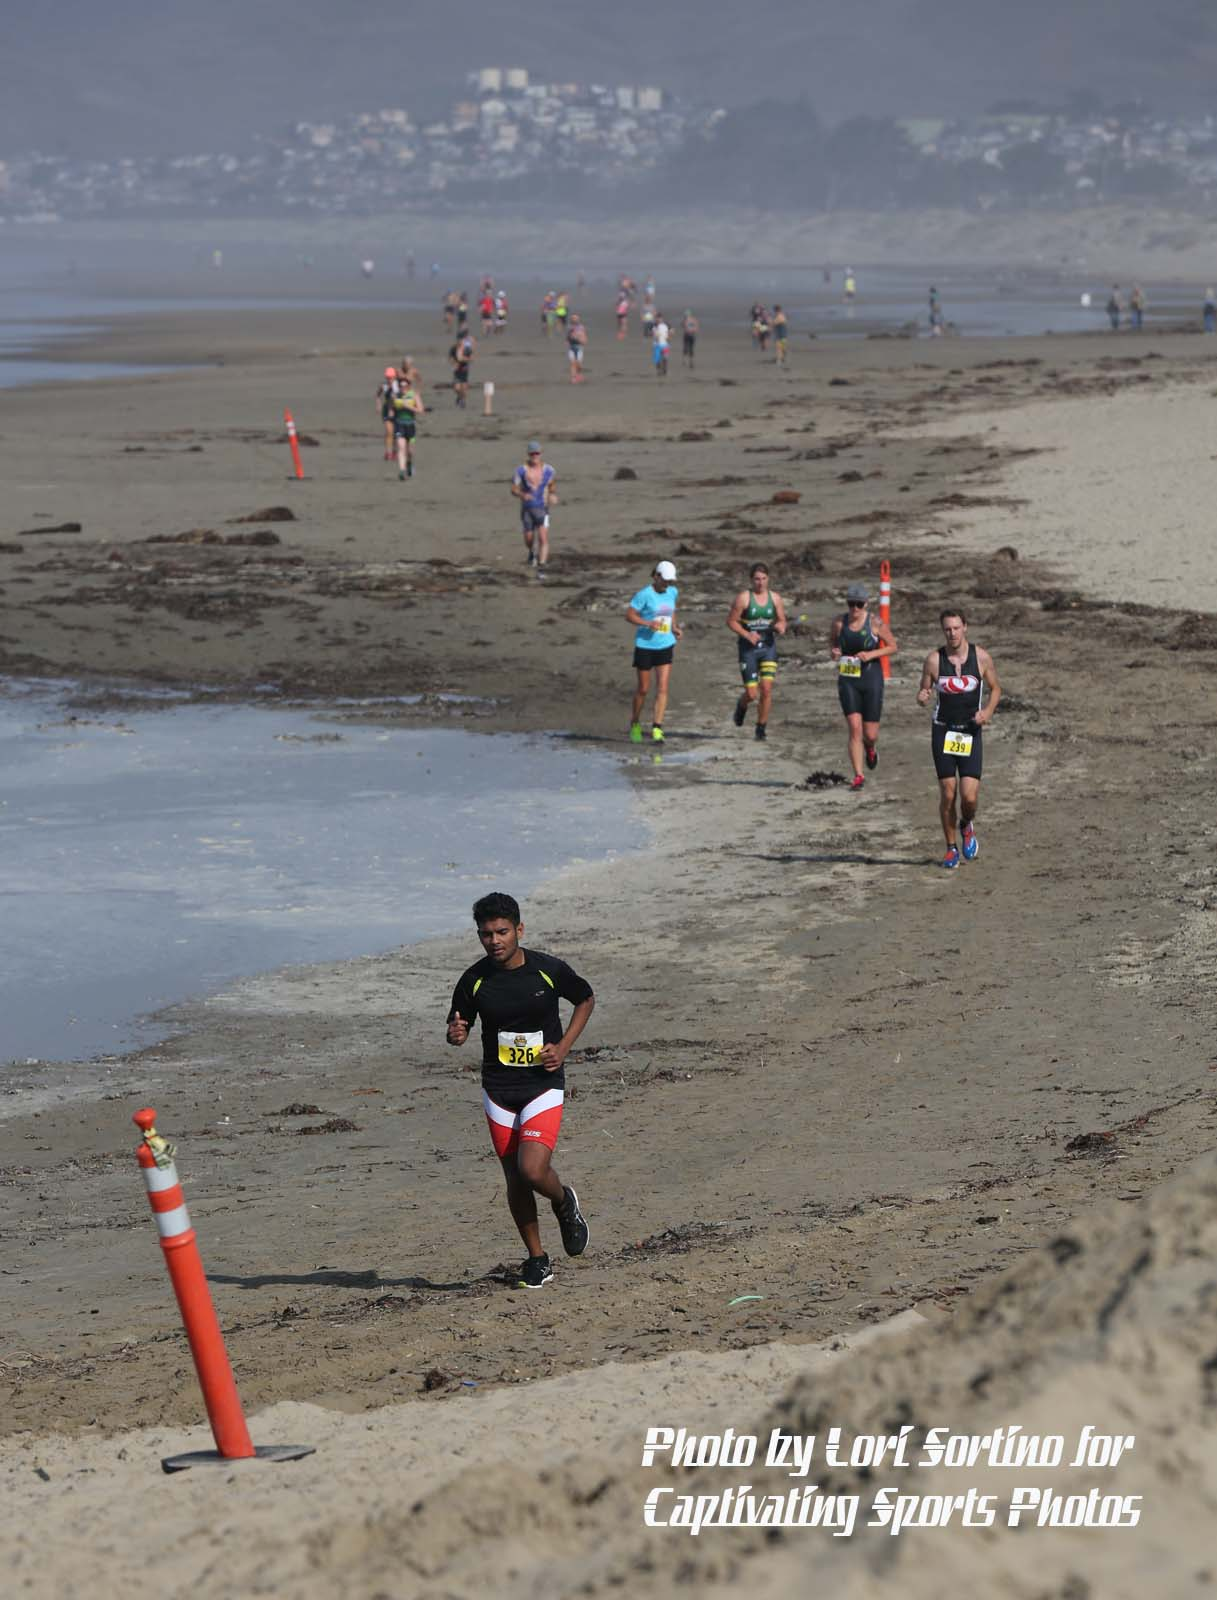 Morro Bay Tri runners on beach